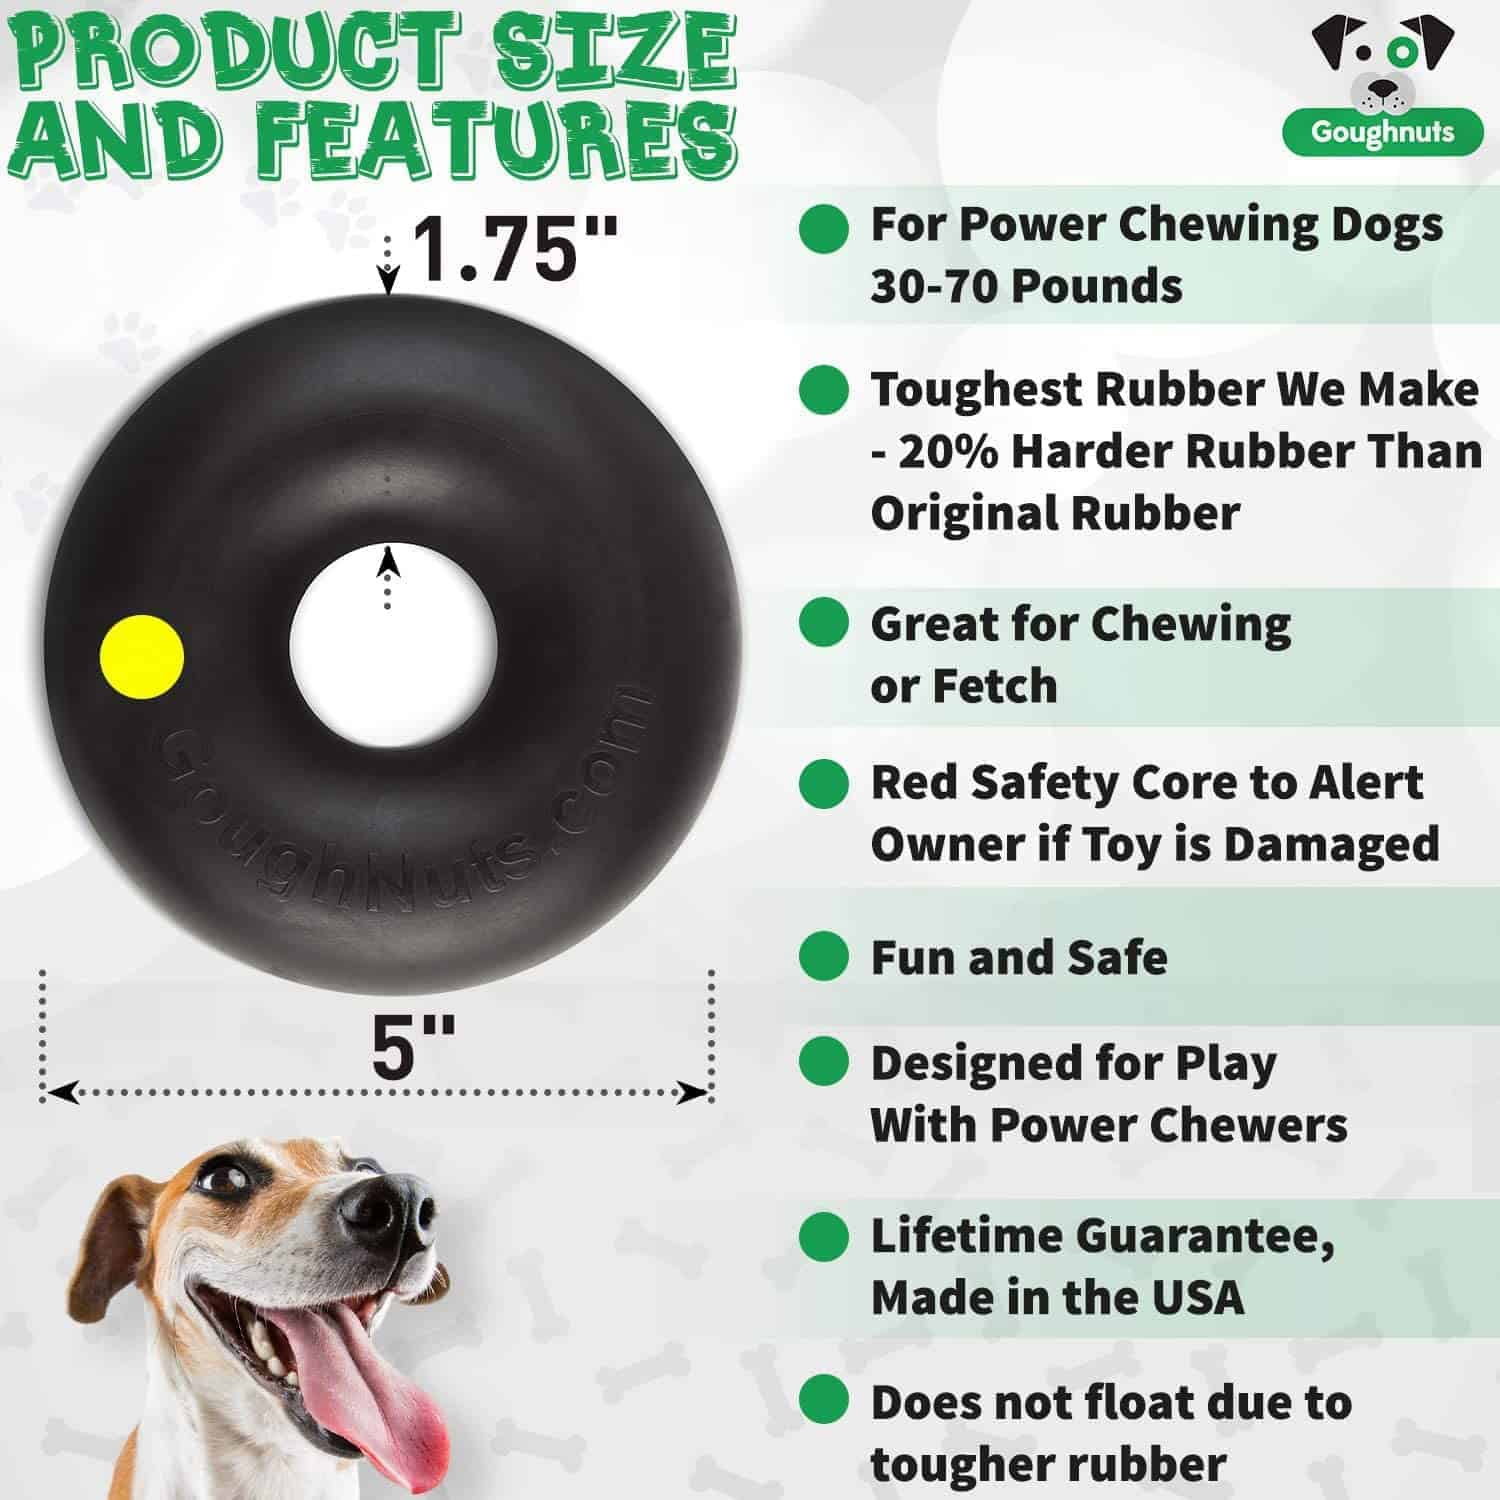 Product infographic for GOUGHNUTS original dog chew toy with 8 bullet points.